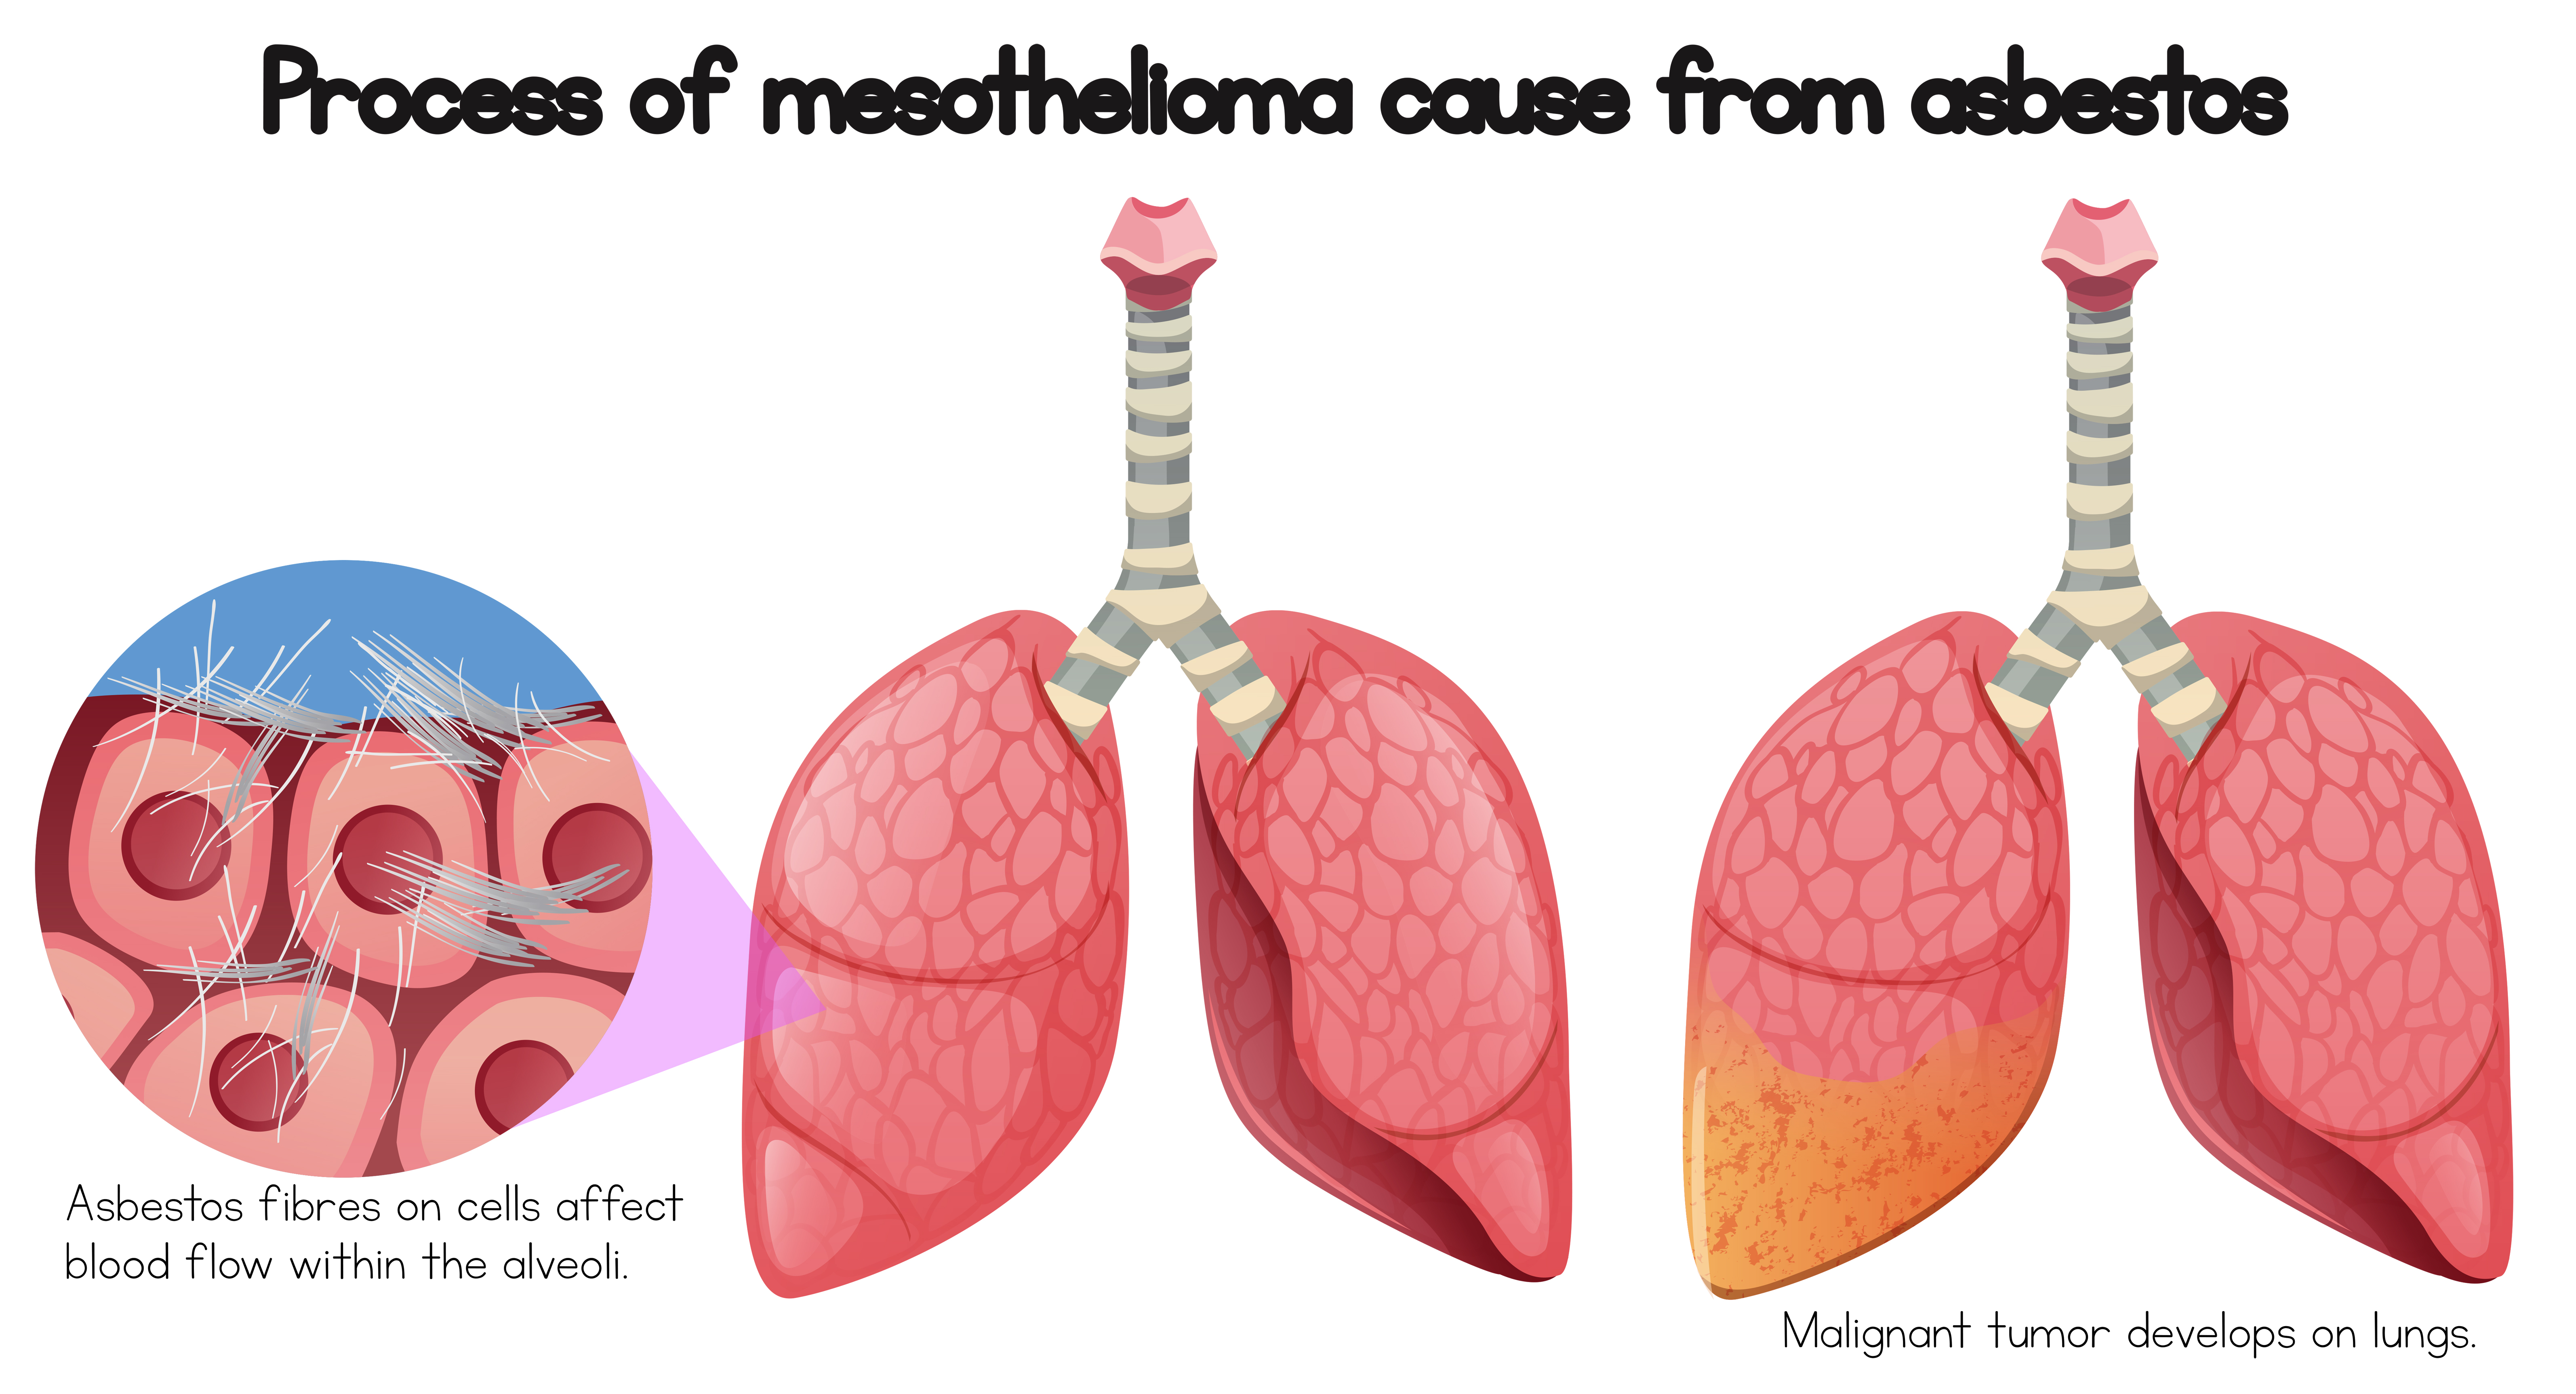 Process Of Mesothelioma Cause Of Asbestos Download Free Vectors Clipart Graphics Vector Art